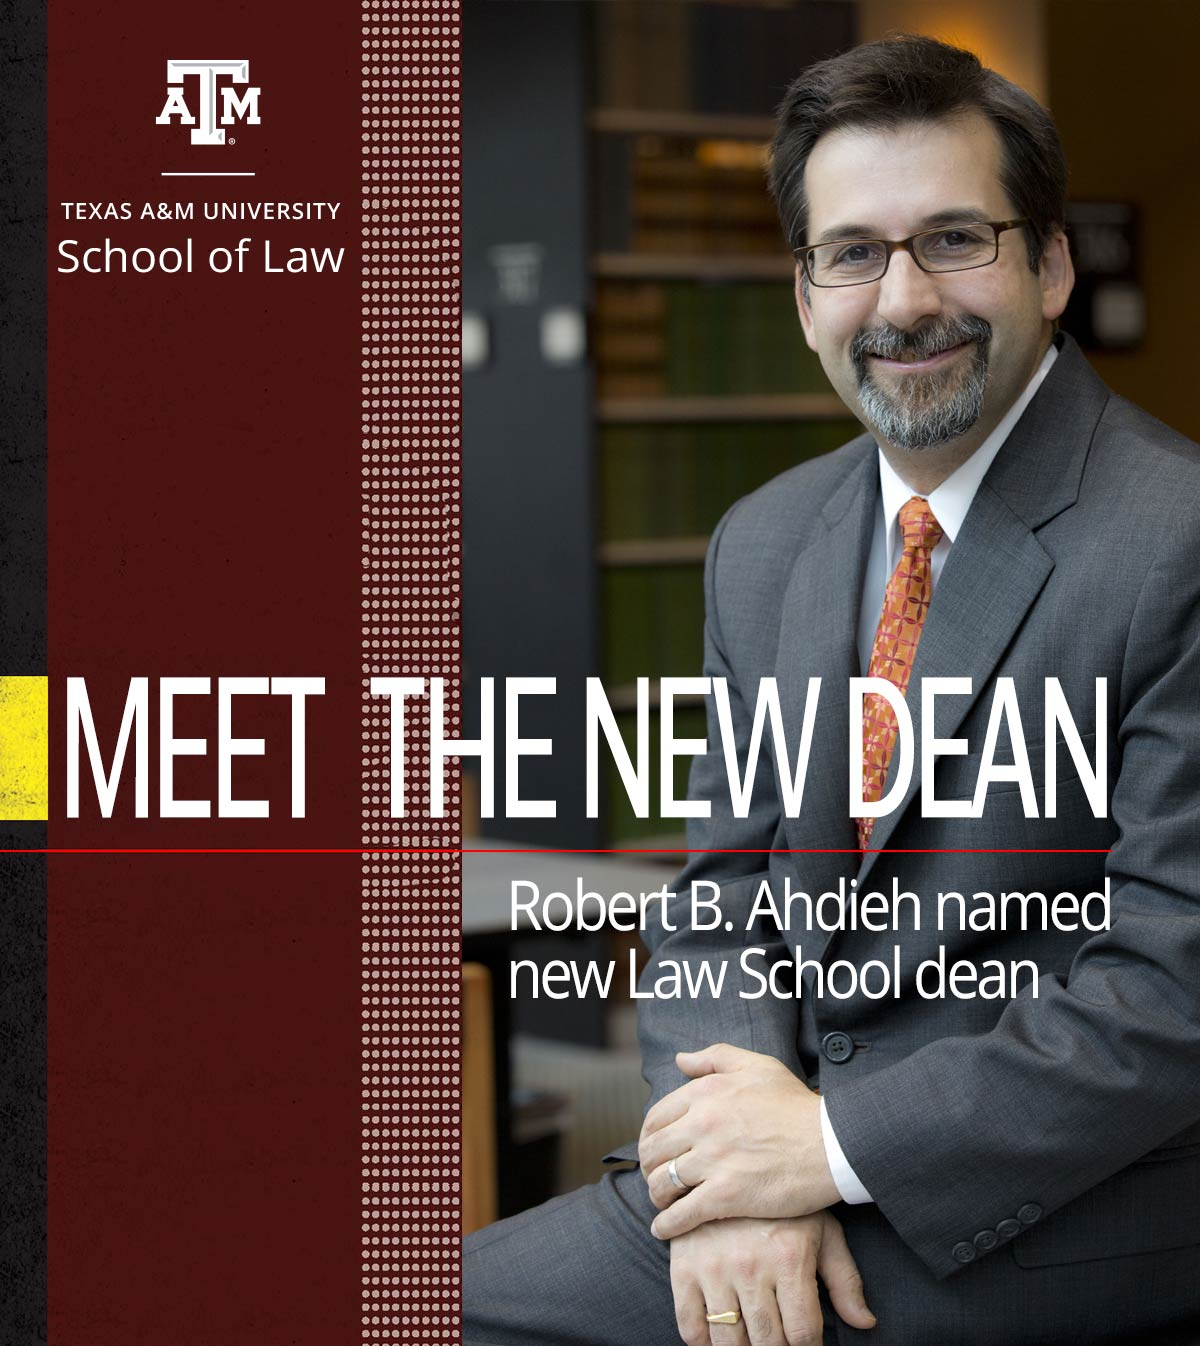 New Dean Robert Ahdieh